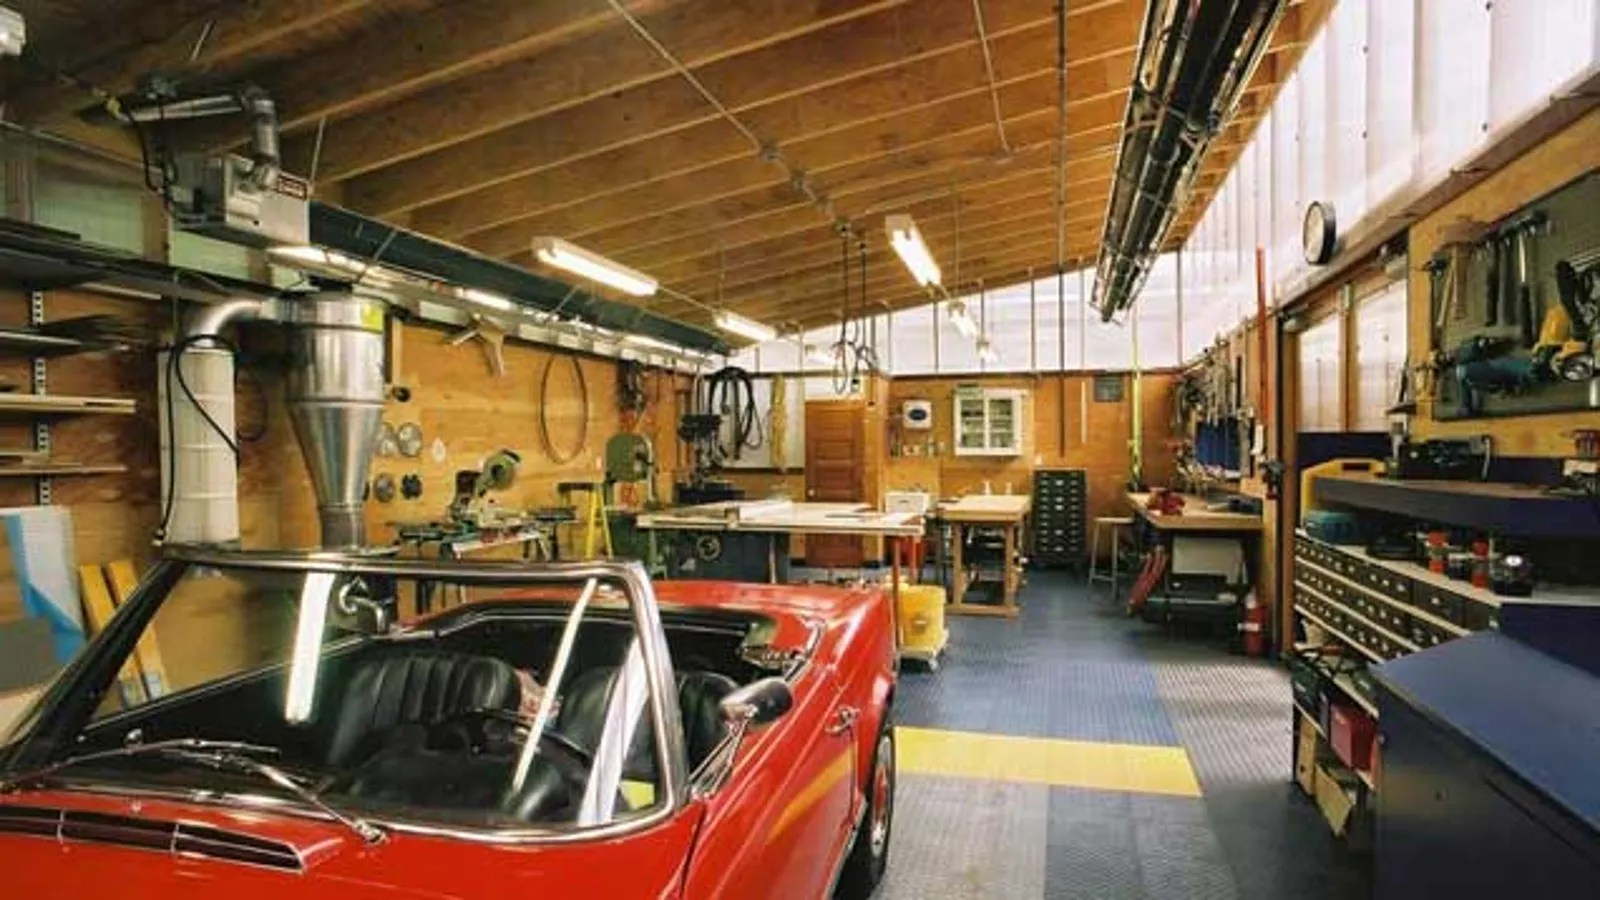 Garage Design Tips How To Transform Your Garage Into The Ultimate Diy Workshop